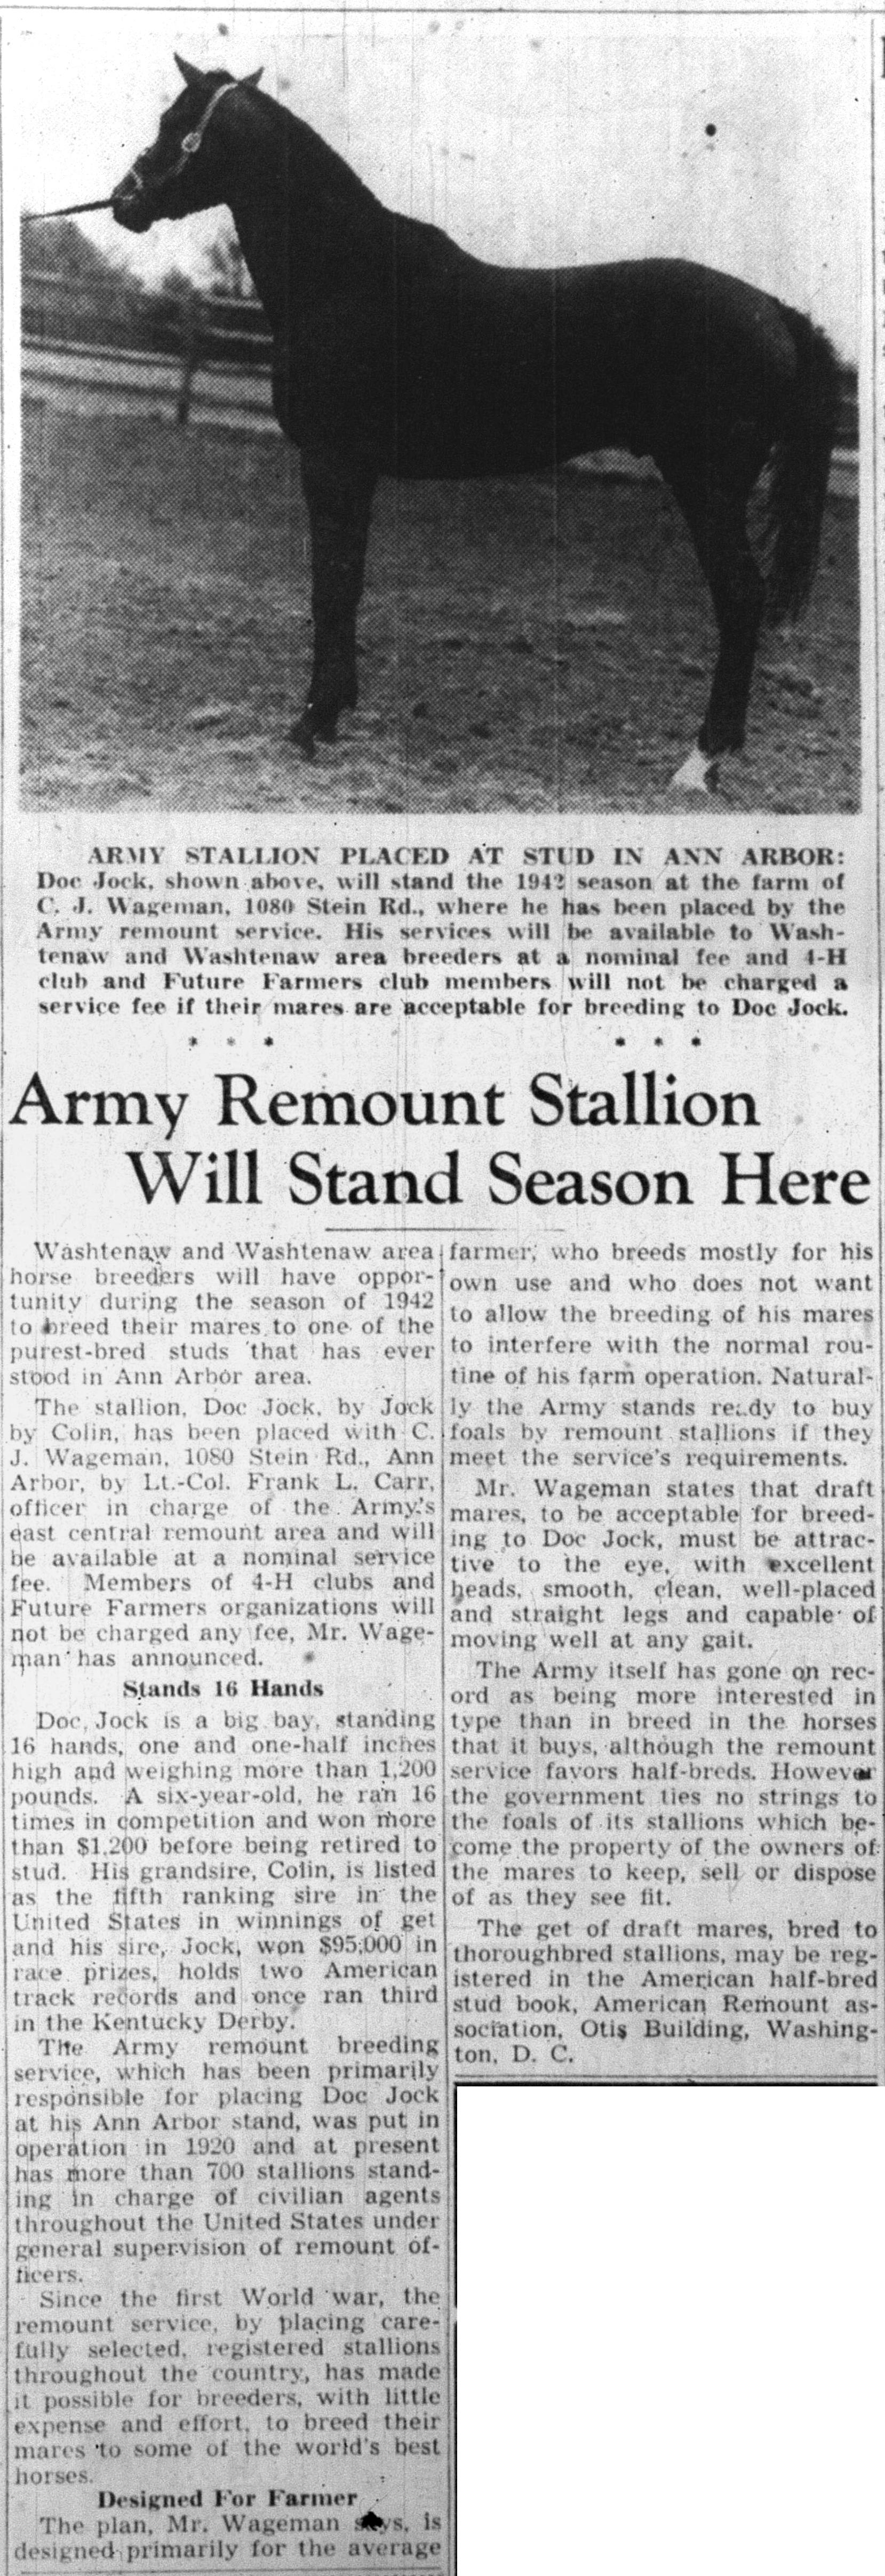 Army Remount Stallion Will Stand Season Here image